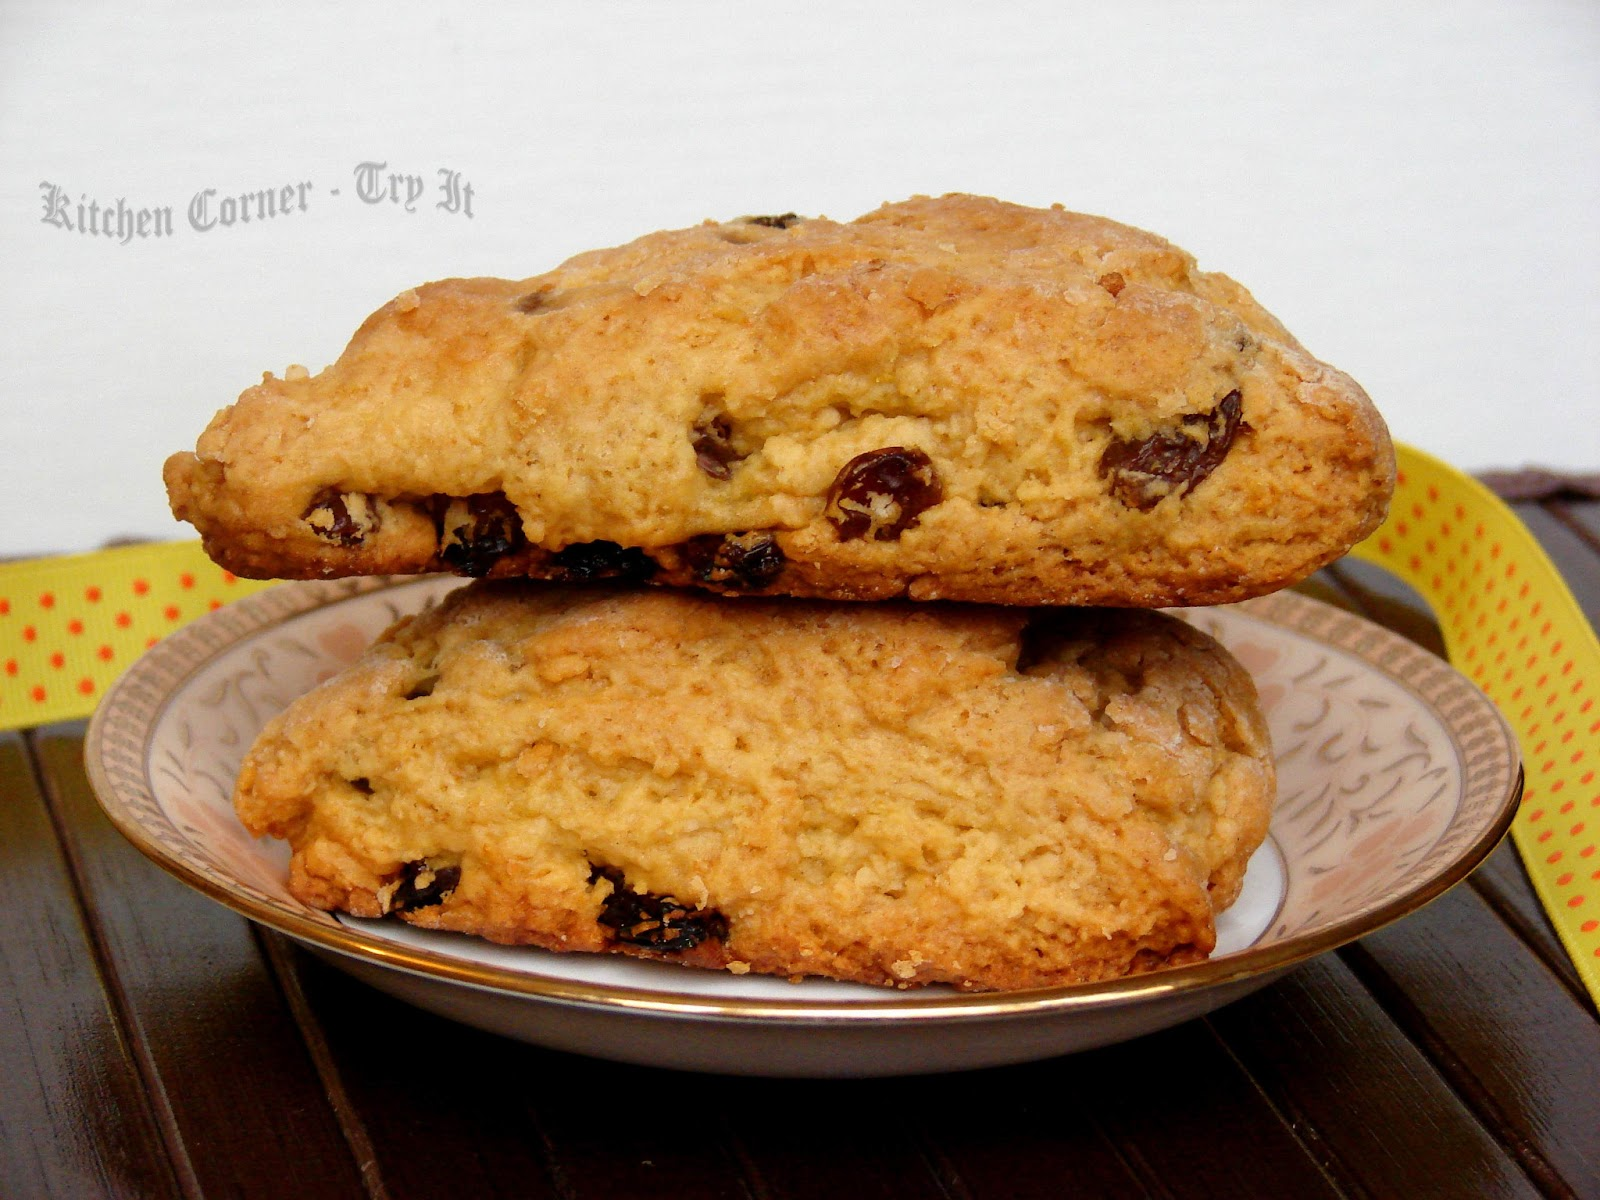 Kitchen Corner-Try It: Orange Raisin Scones